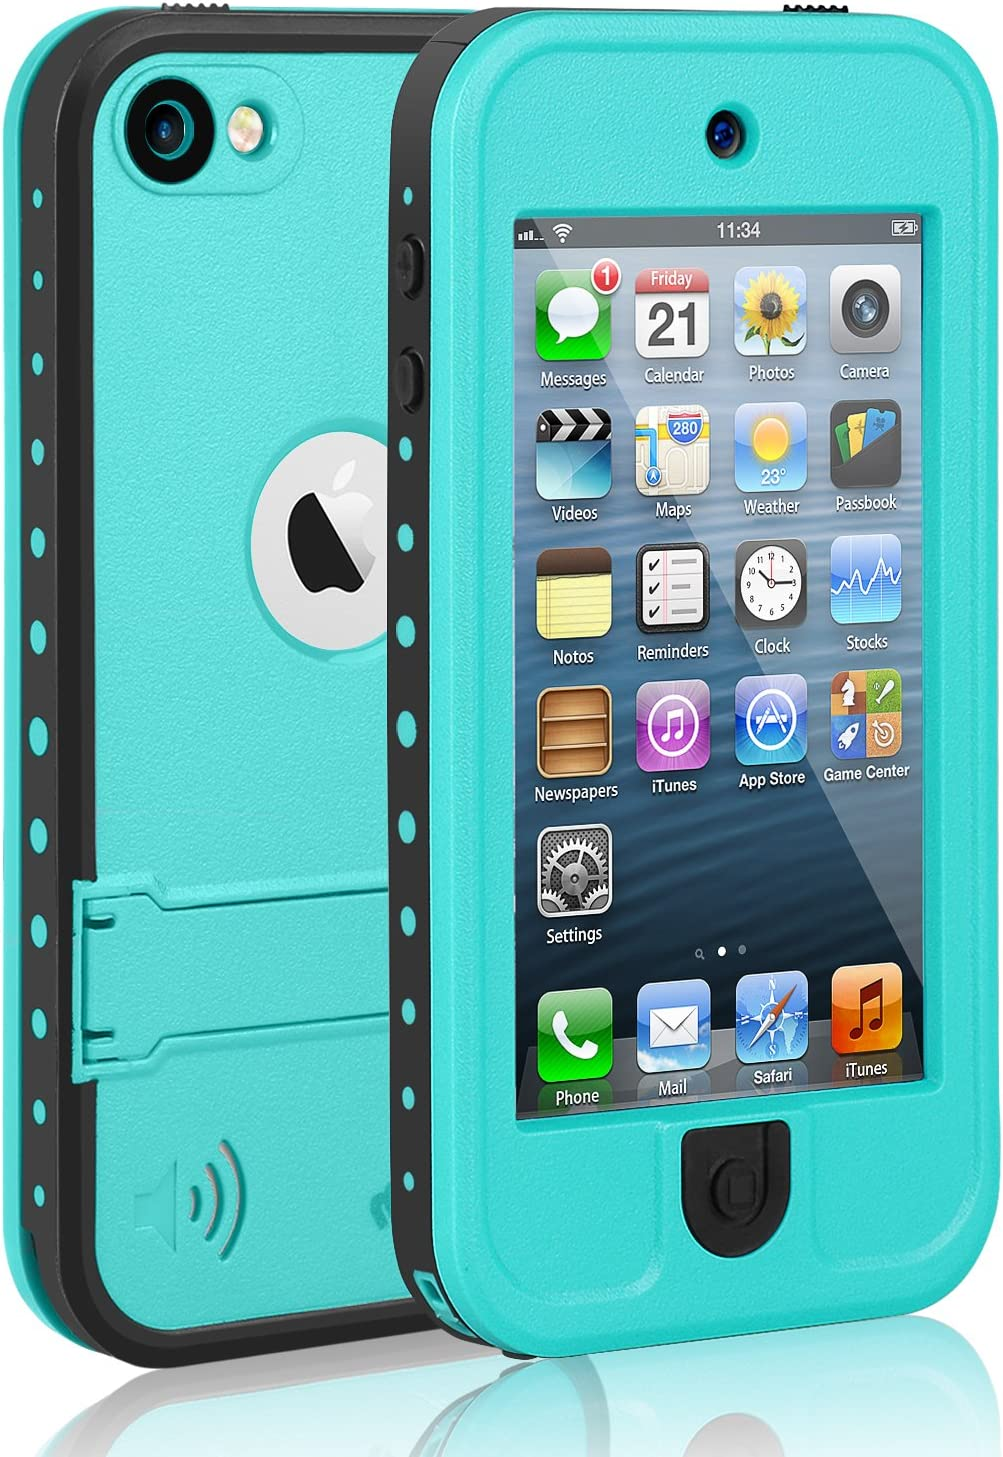 Waterproof Case for iPod 7 iPod 5 iPod 6, Meritcase Waterproof Shockproof Dirtproof Snowproof Case Cover with Kickstand for Apple iPod Touch 5th/6th/7th Generation for Swimming Diving Surfing (Blue)